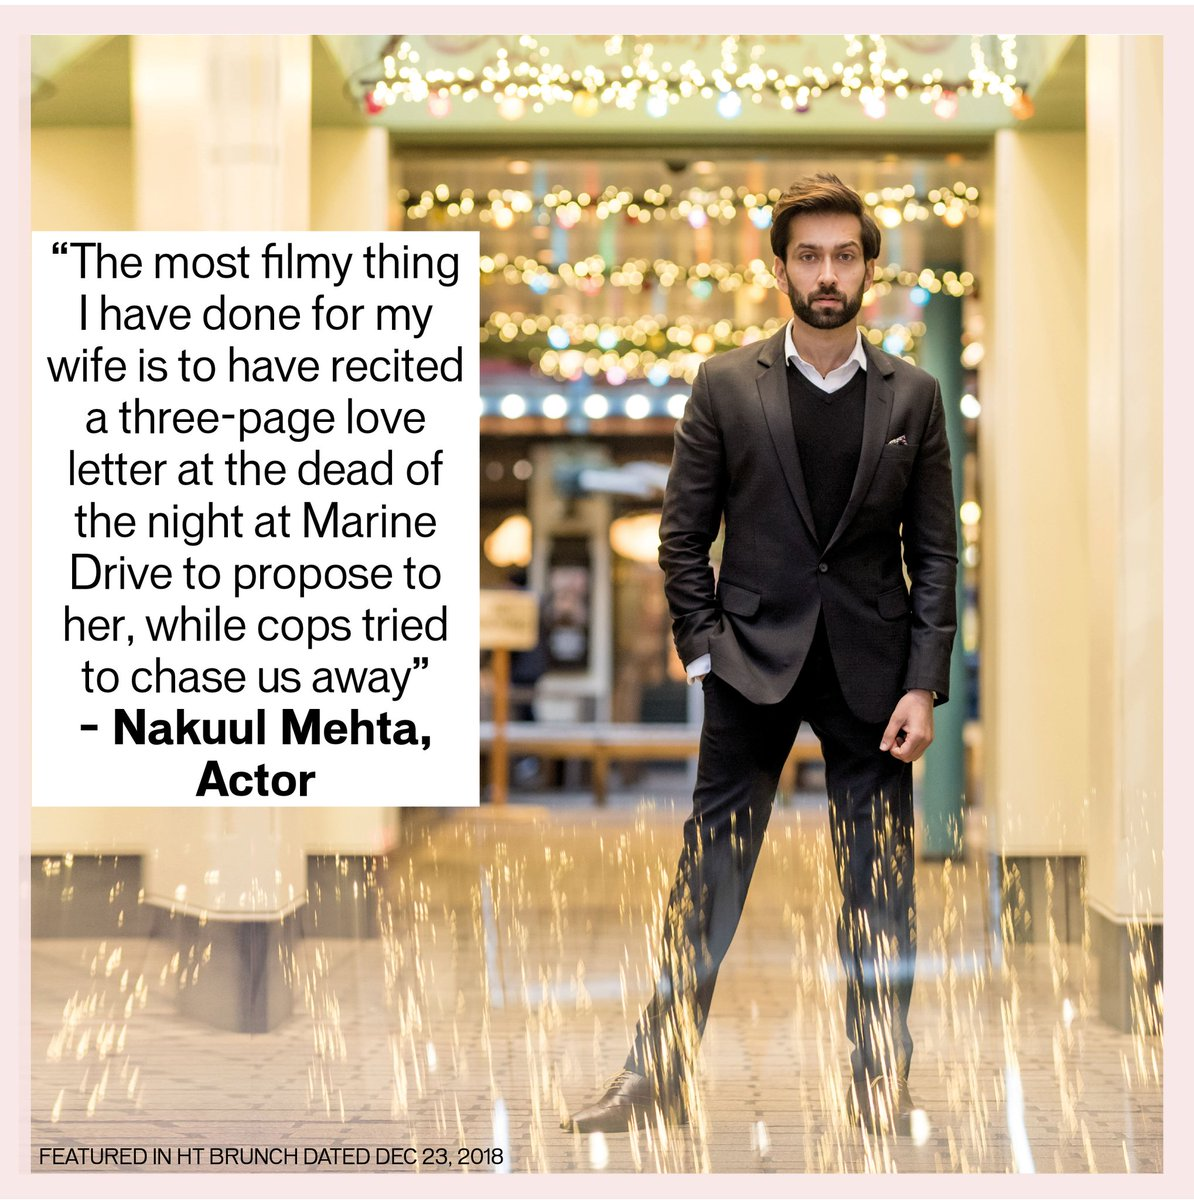 Meet a dashing television star who is rather filmy in real life! @NakuulMehta @htTweets #personalagenda #actorswelove #tvshows #tvactors  #nakuulmehta  #starswelove